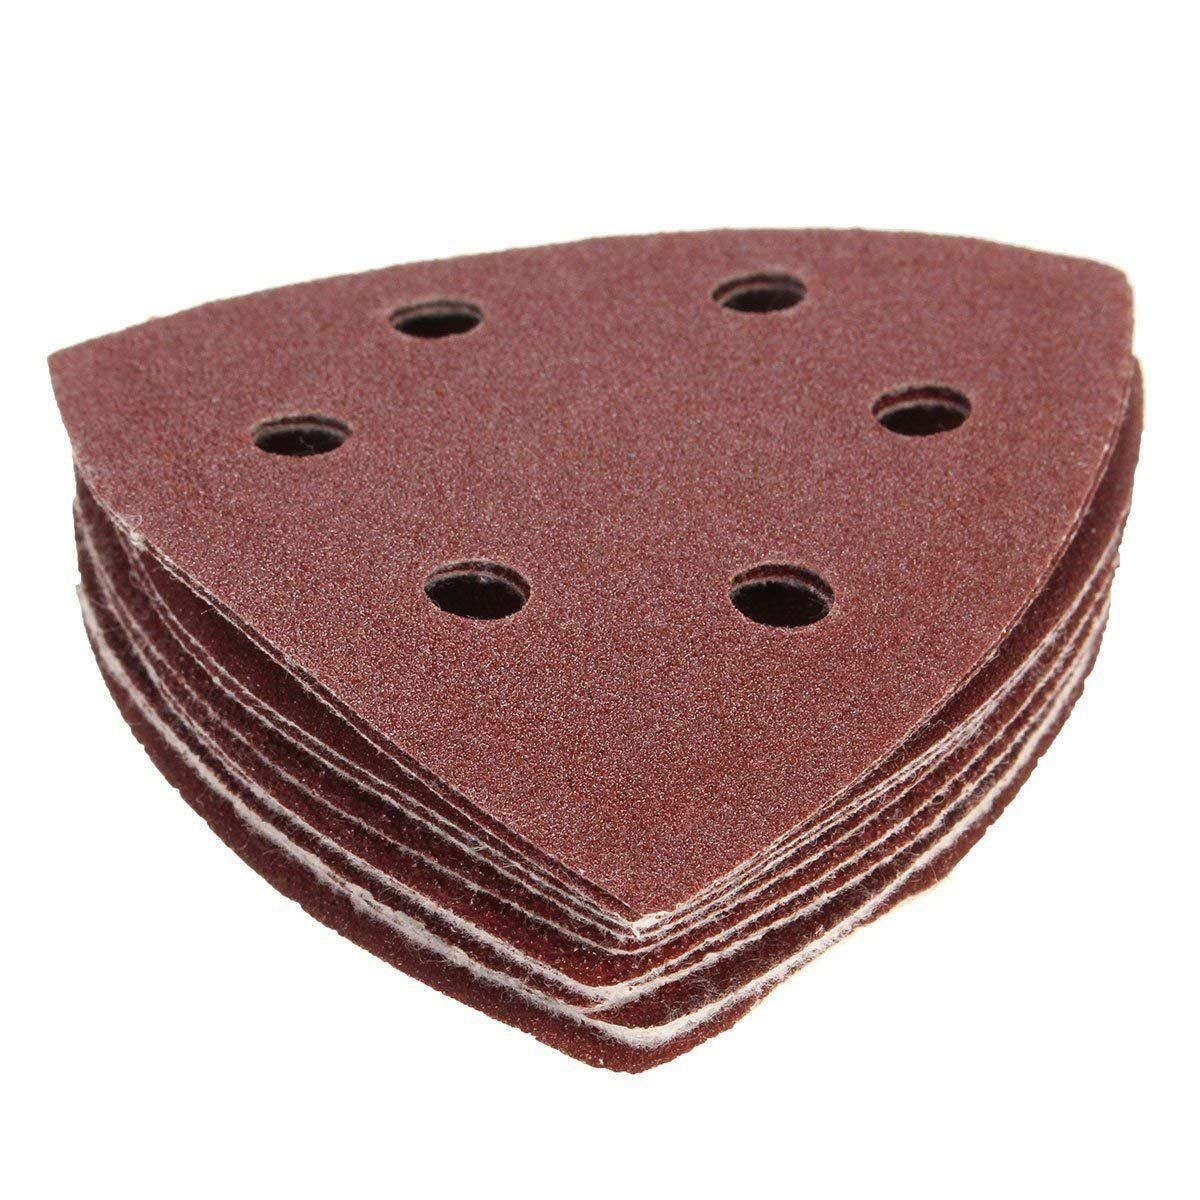 10pcs Nylon Delta Sand Paper Pads 90mm Triangles Sandpaper 40, 60, 80, 100 /120 Grit Sanding Sheets Abrasive Woodworking Tools